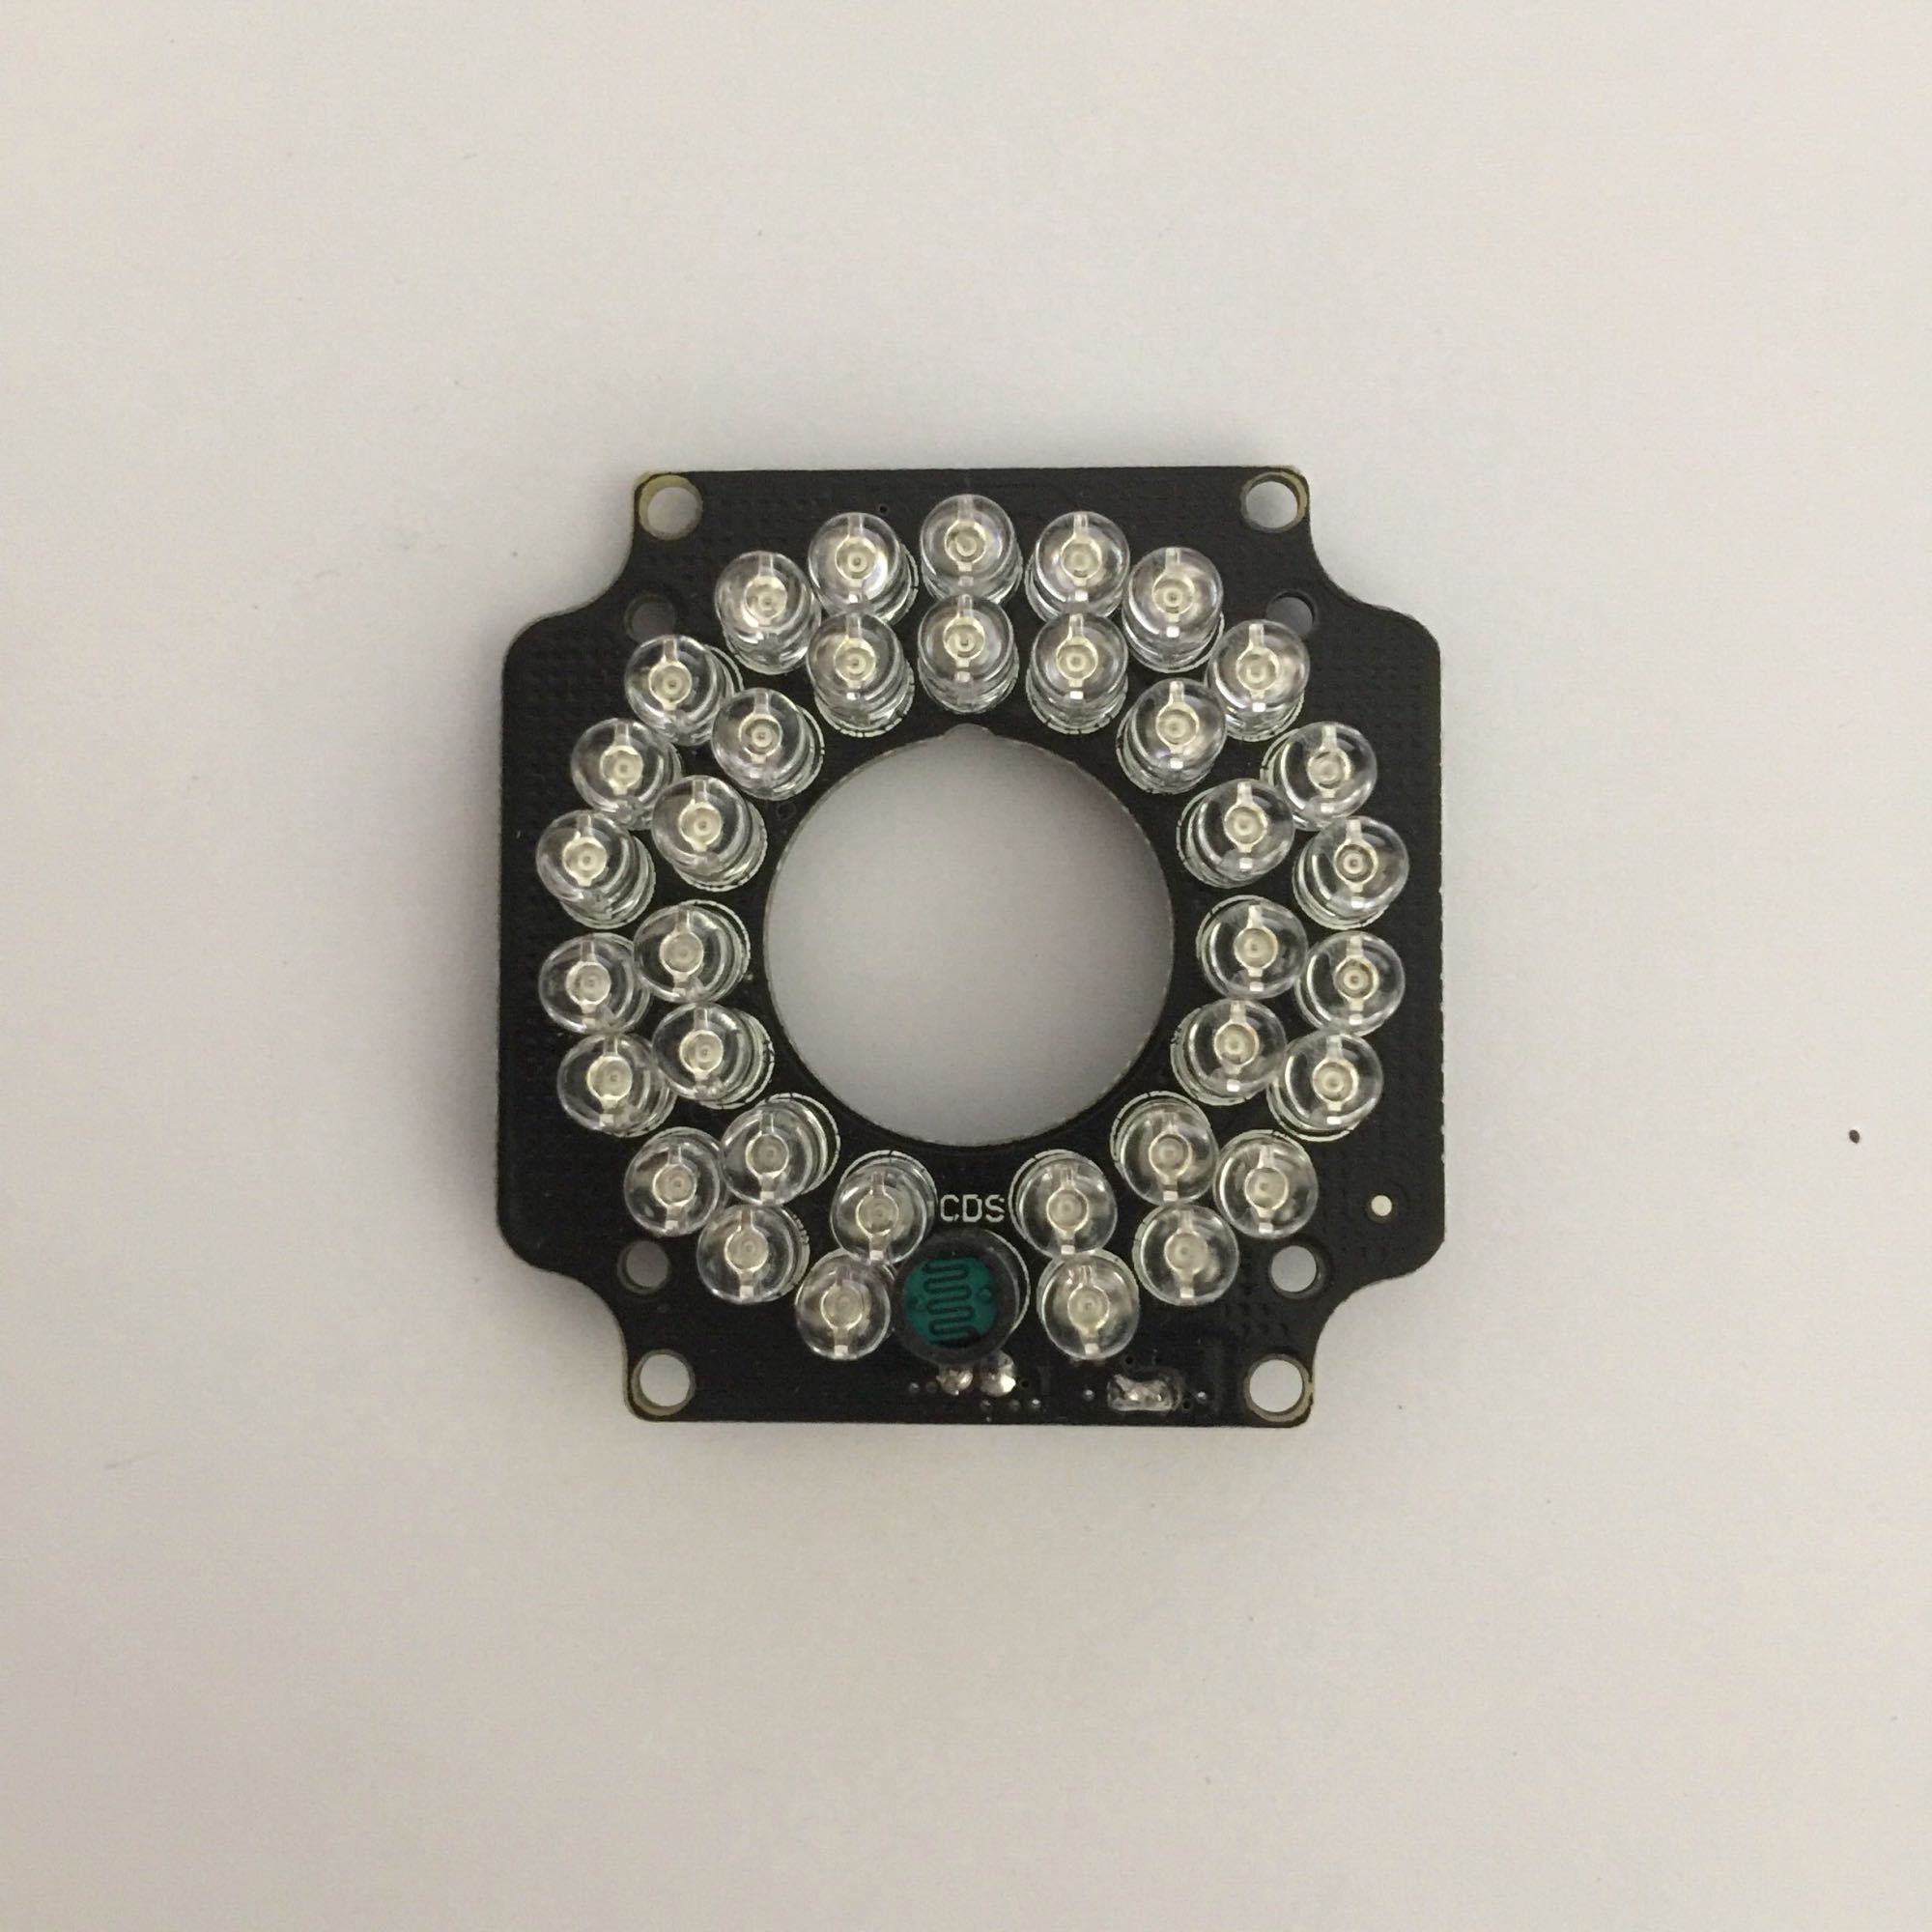 CCTV camera fill light IR LED Light board 36pcs infrared 850nm LED For Security Camera 3.6mm Lens IR Camera with IRC цена